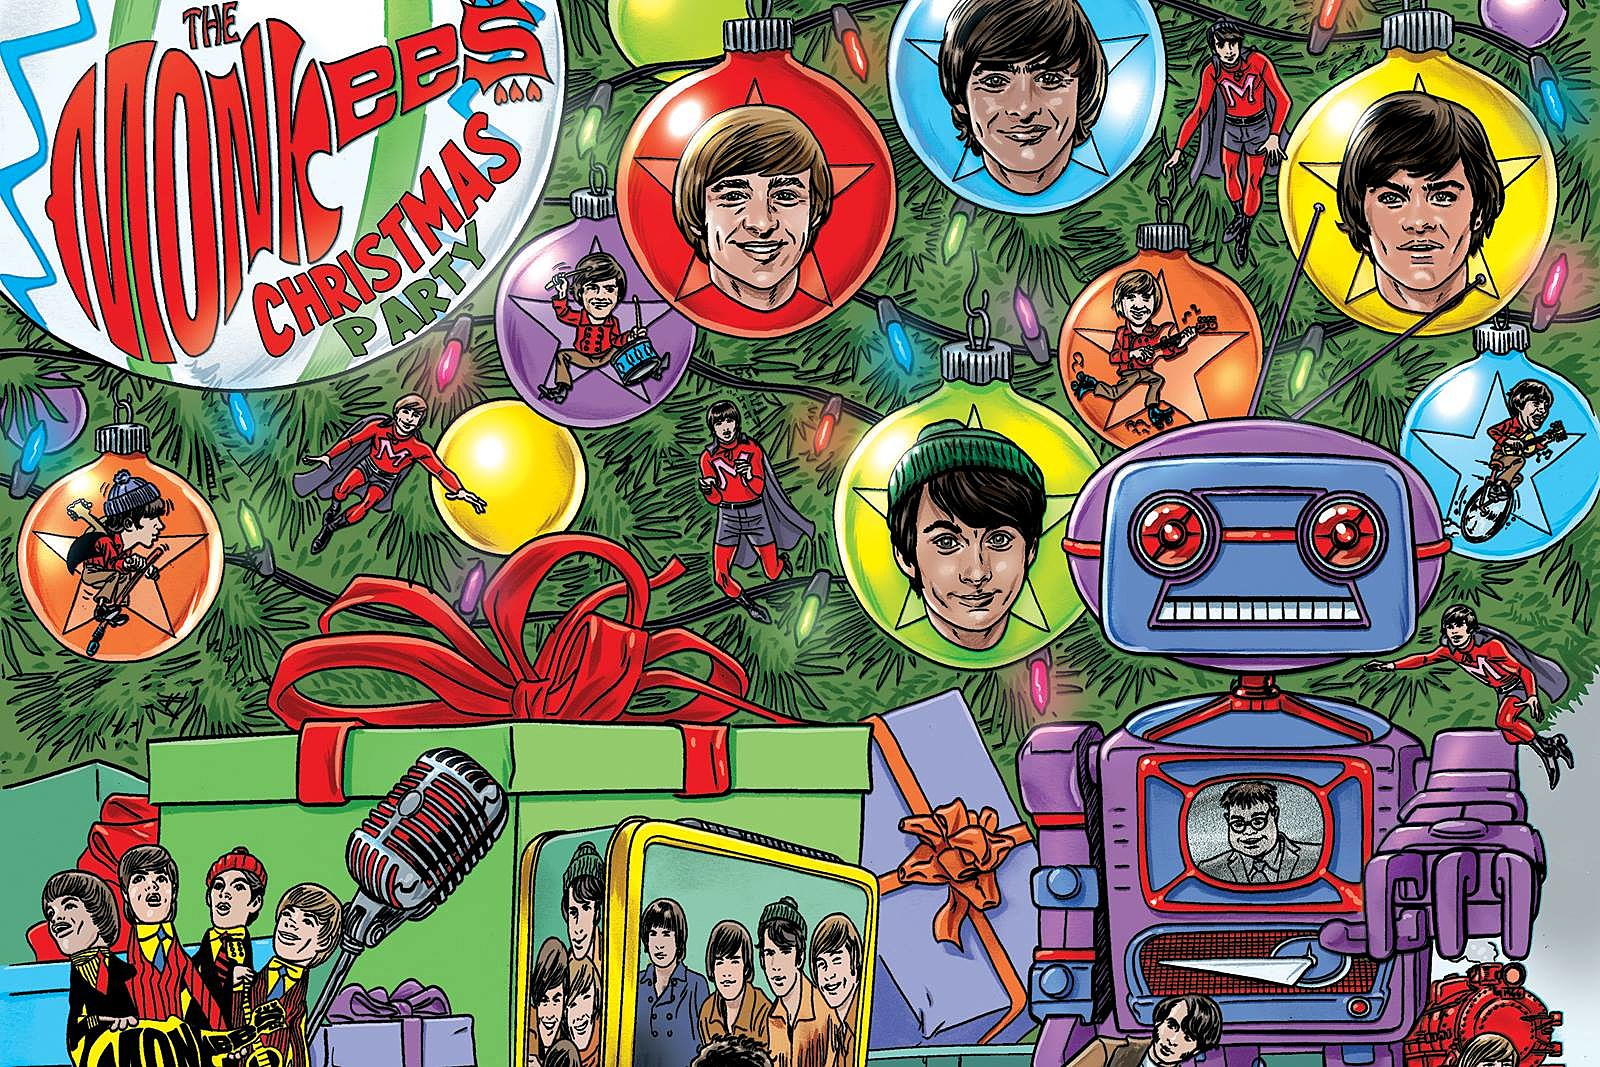 The Monkees' 'Christmas Party' Set for Release